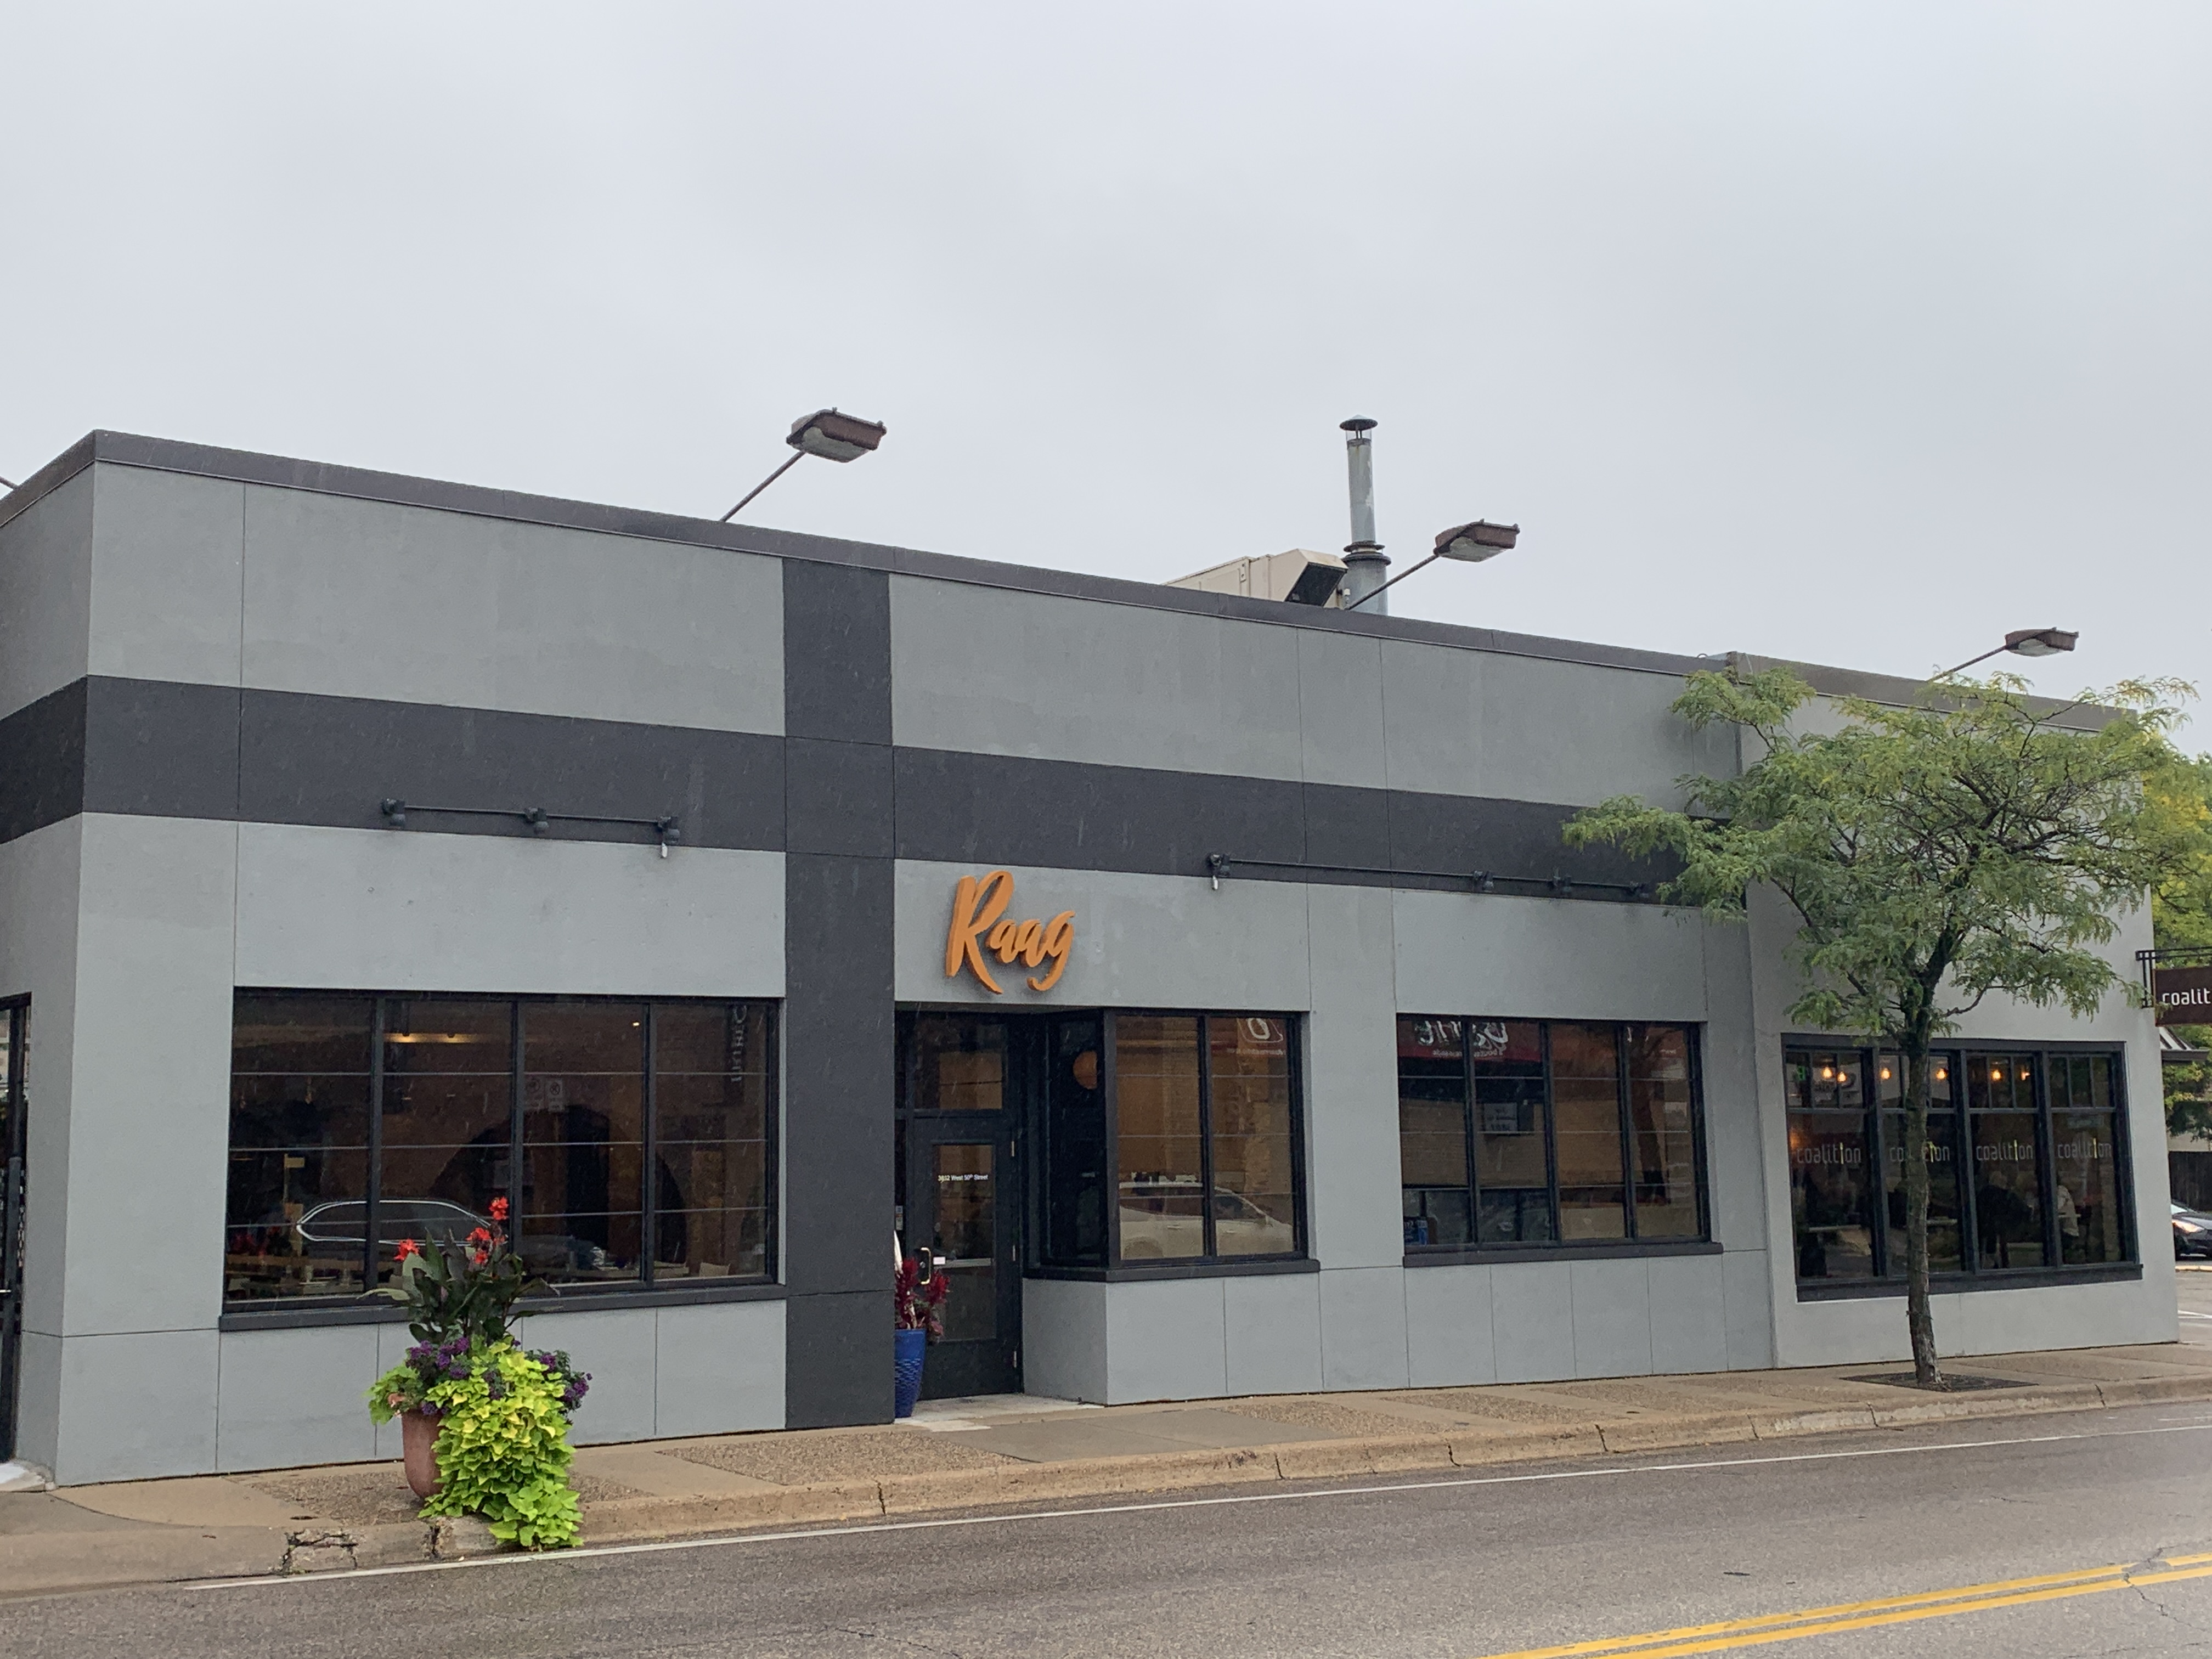 Raag now serving fine Indian cuisine at 50th & France ...